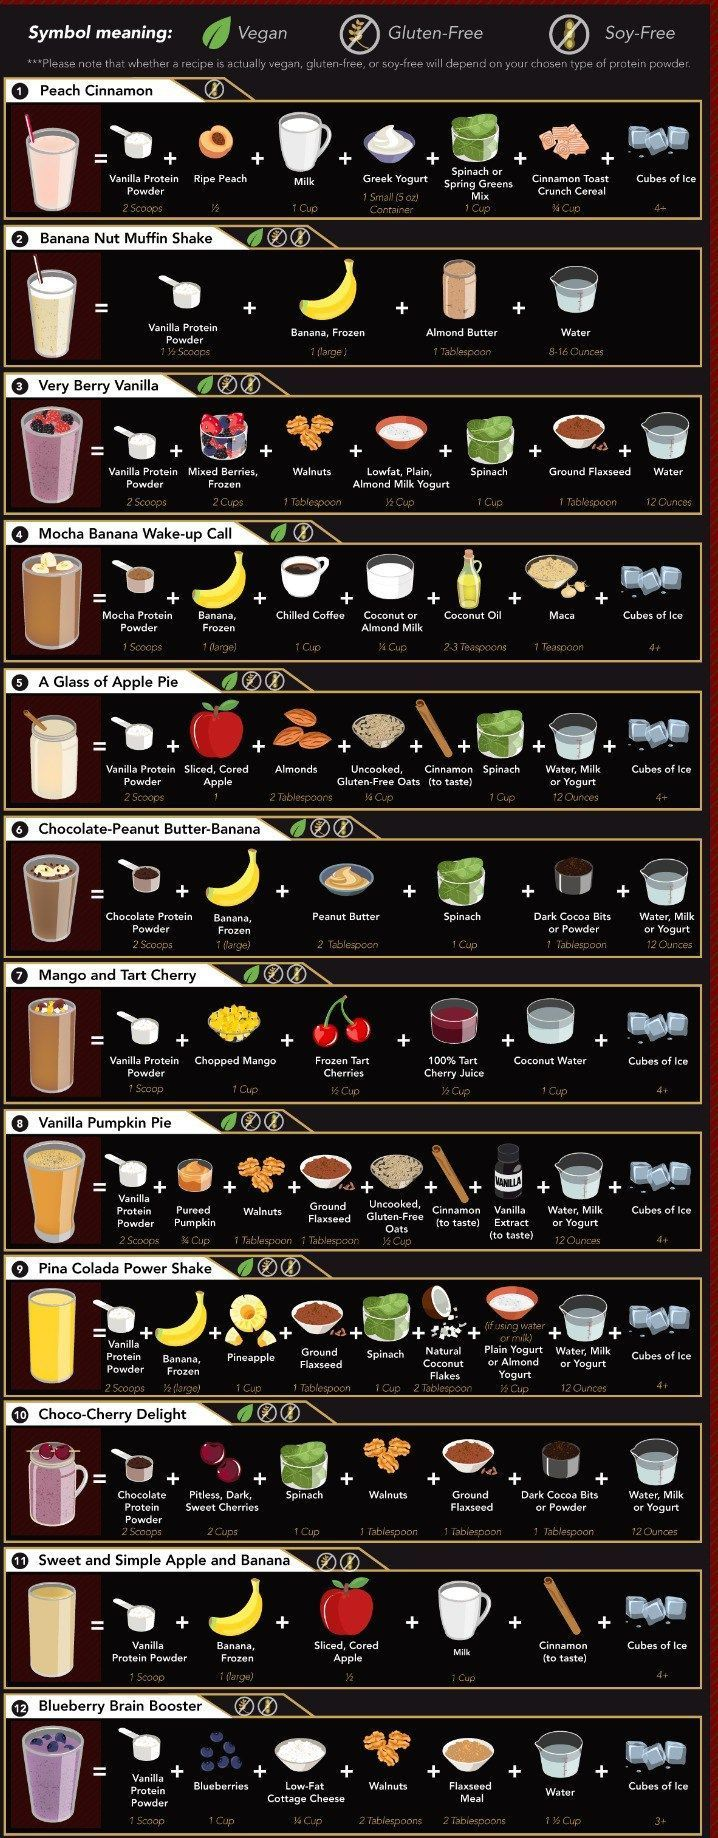 Are Smoothies Healthy? Science, Myths, Weight Loss